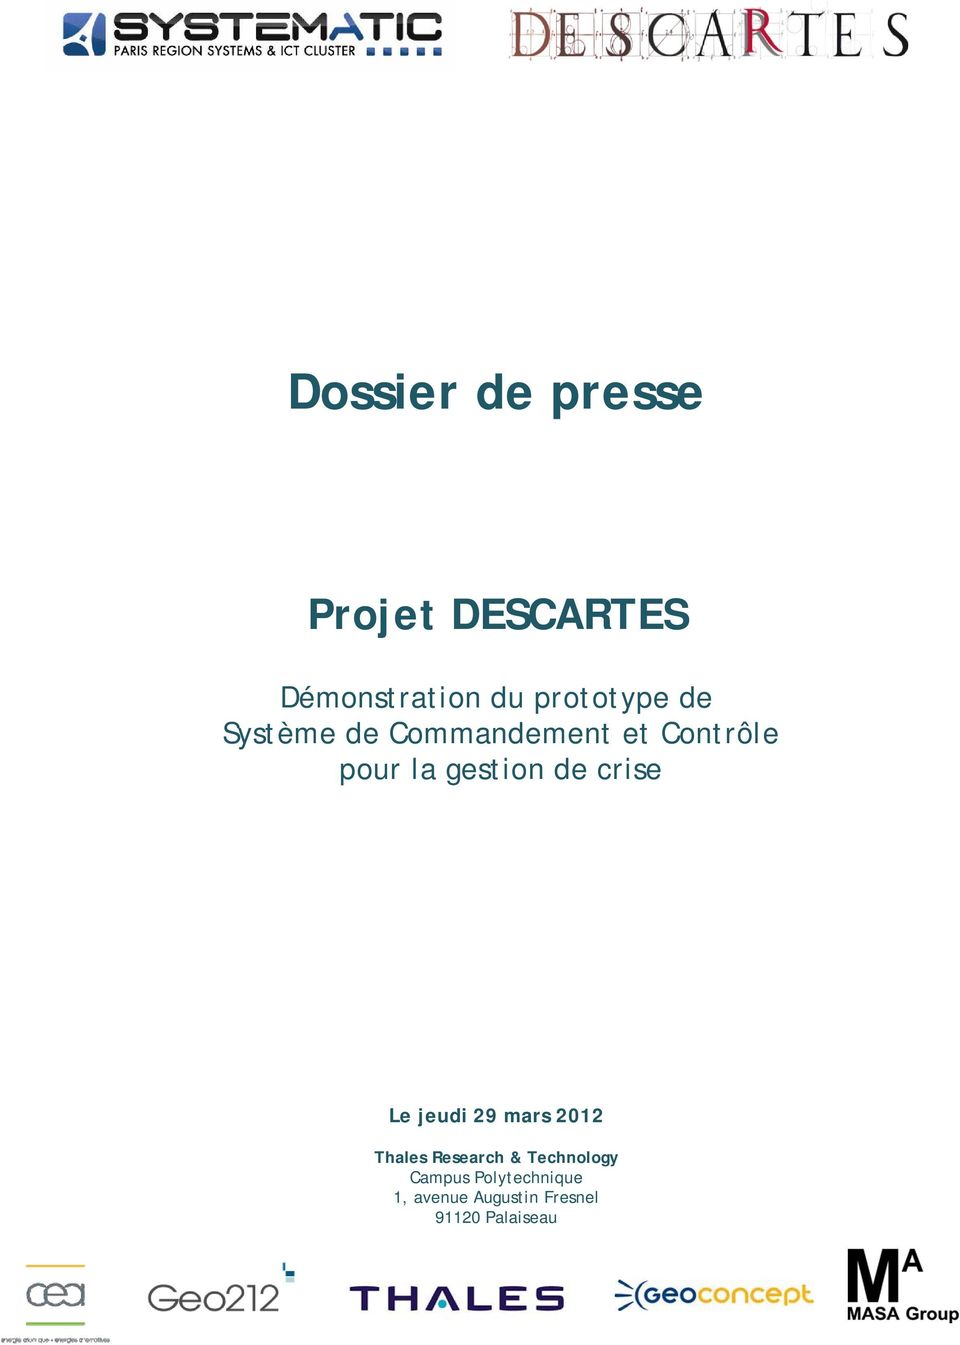 gestion de crise Le jeudi 29 mars 2012 Thales Research &